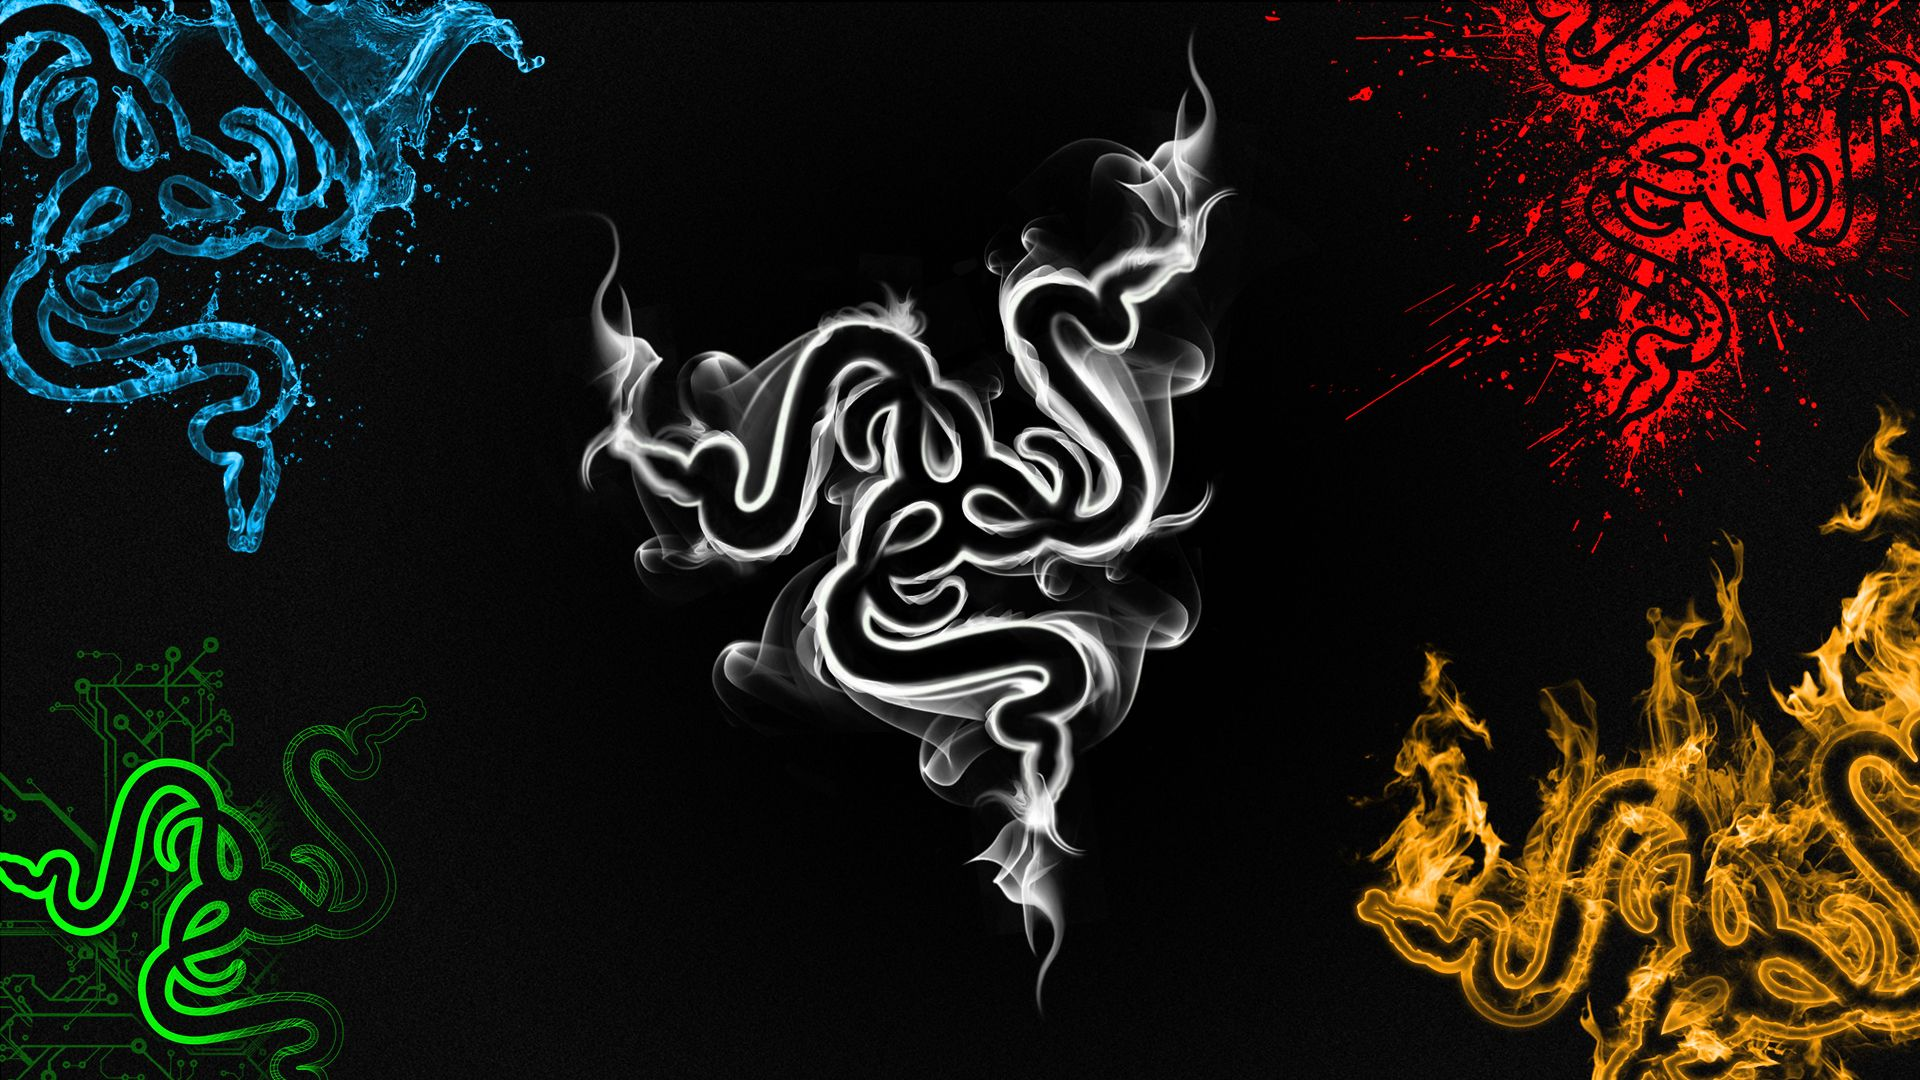 Razer Wallpapers Wallpaper Do Telefone Preto Fundos Para Pc